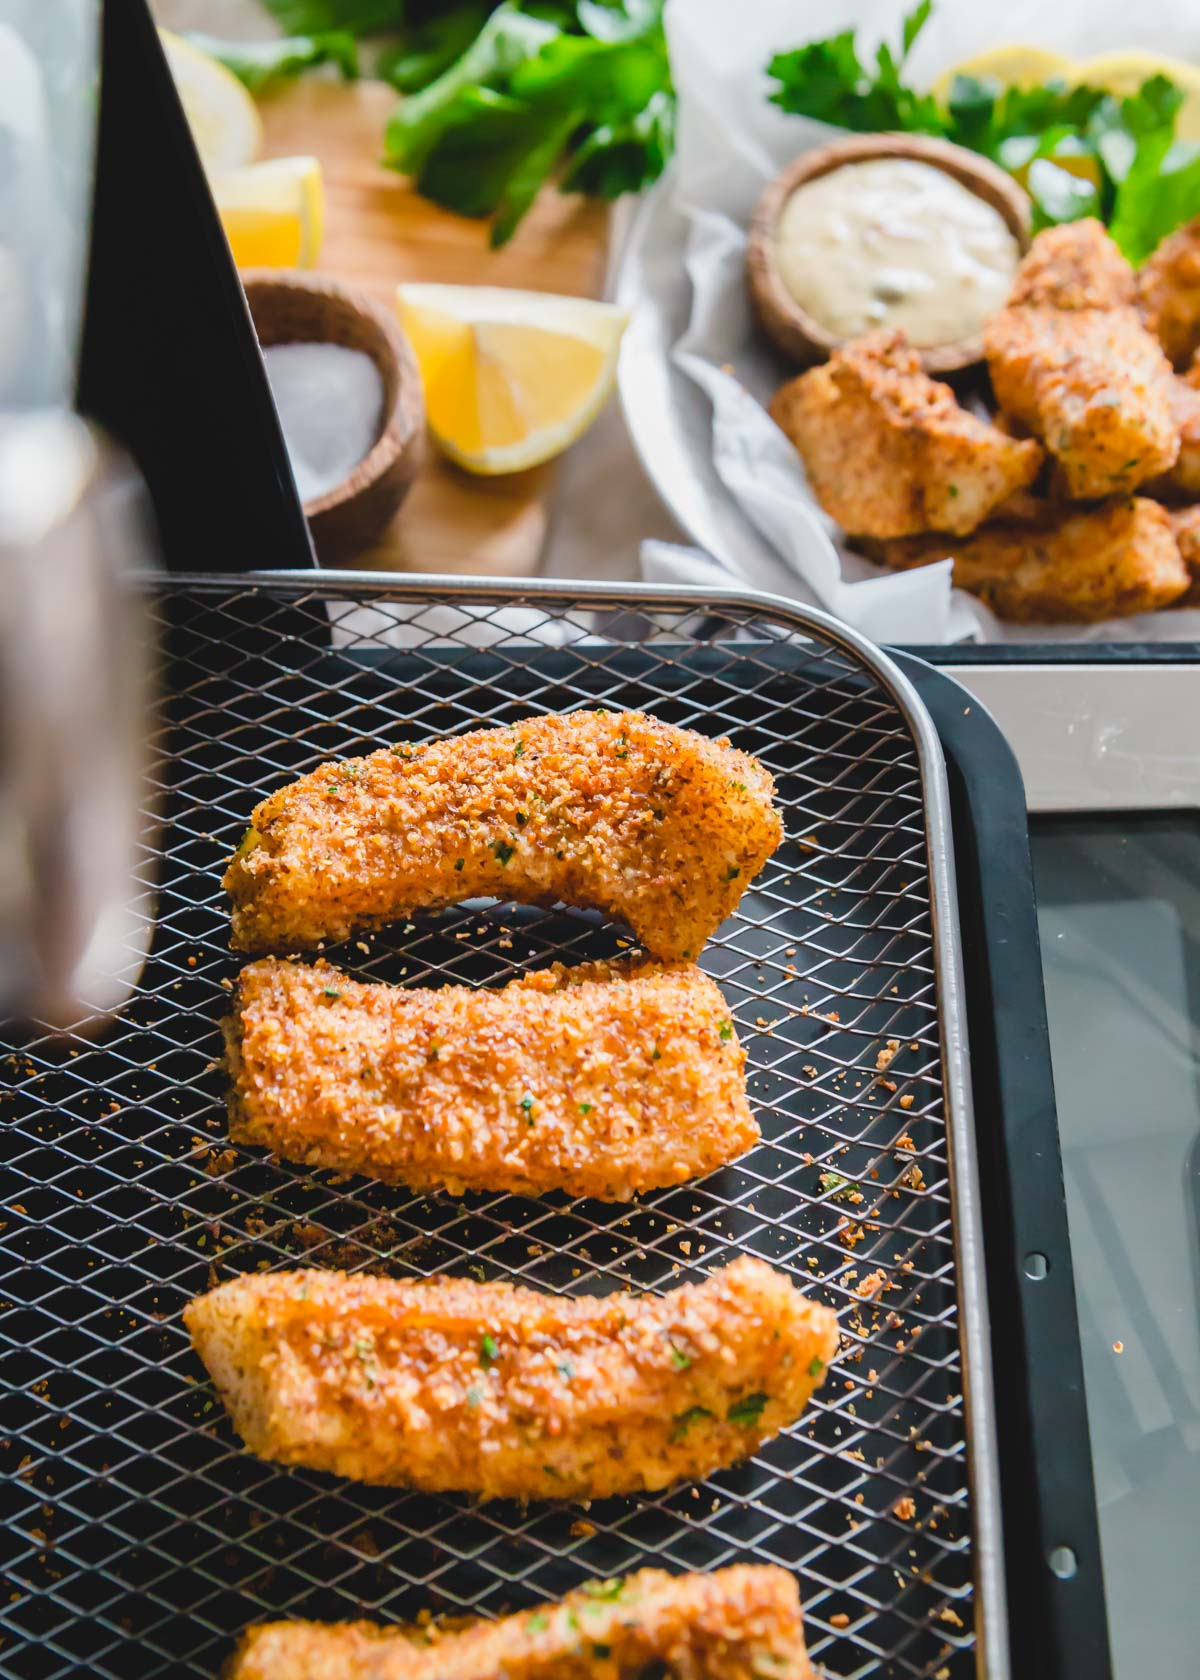 After 10 minutes in the air fryer, these cod fish sticks are perfectly crispy on the outside while moist and tender on the inside.